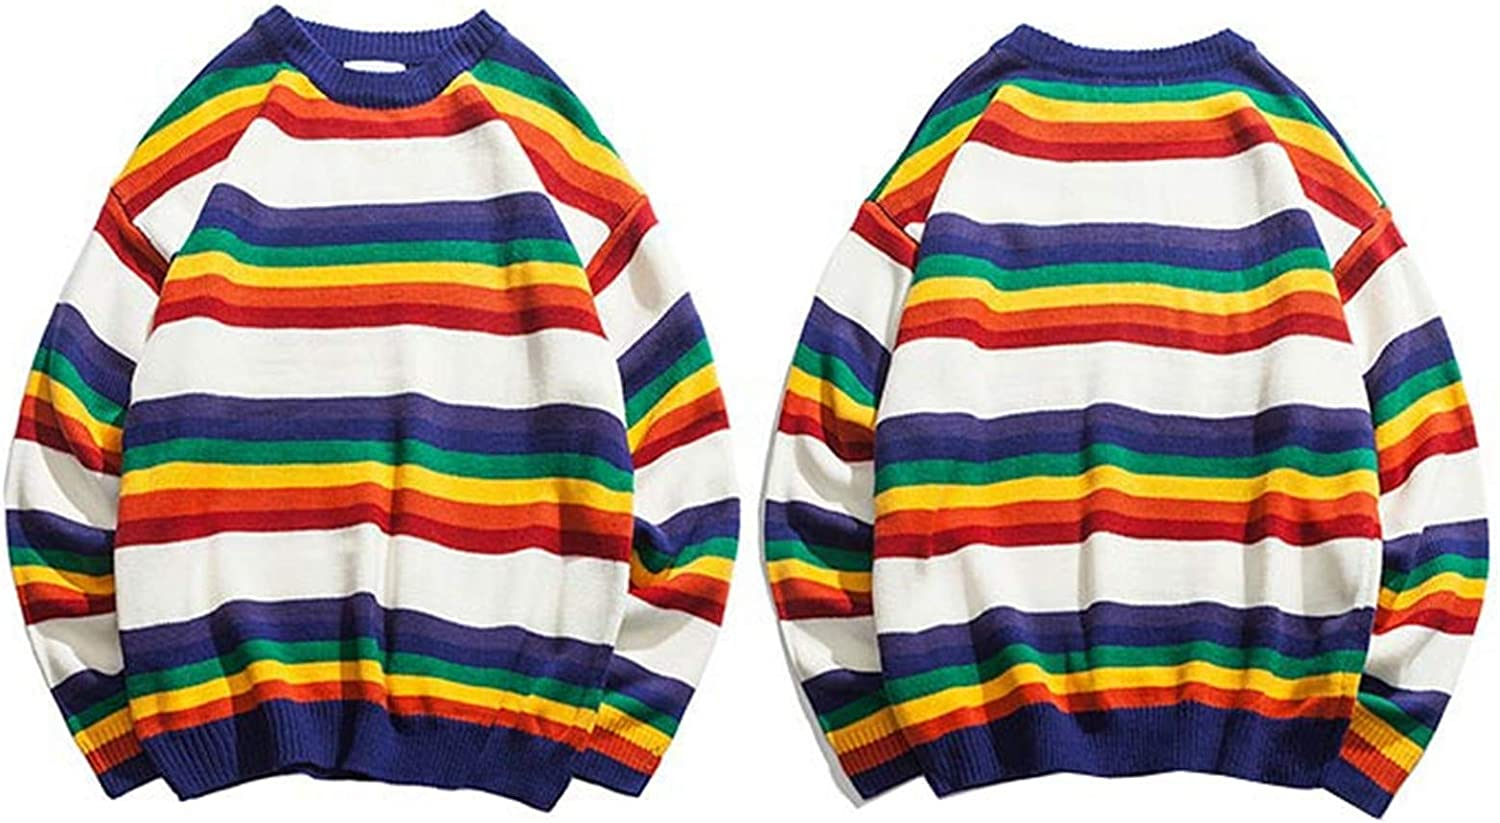 Retro Rainbow Knitted Striped Sweater Mens Max 51% OFF Pullover Hip Hop Popular product Swea